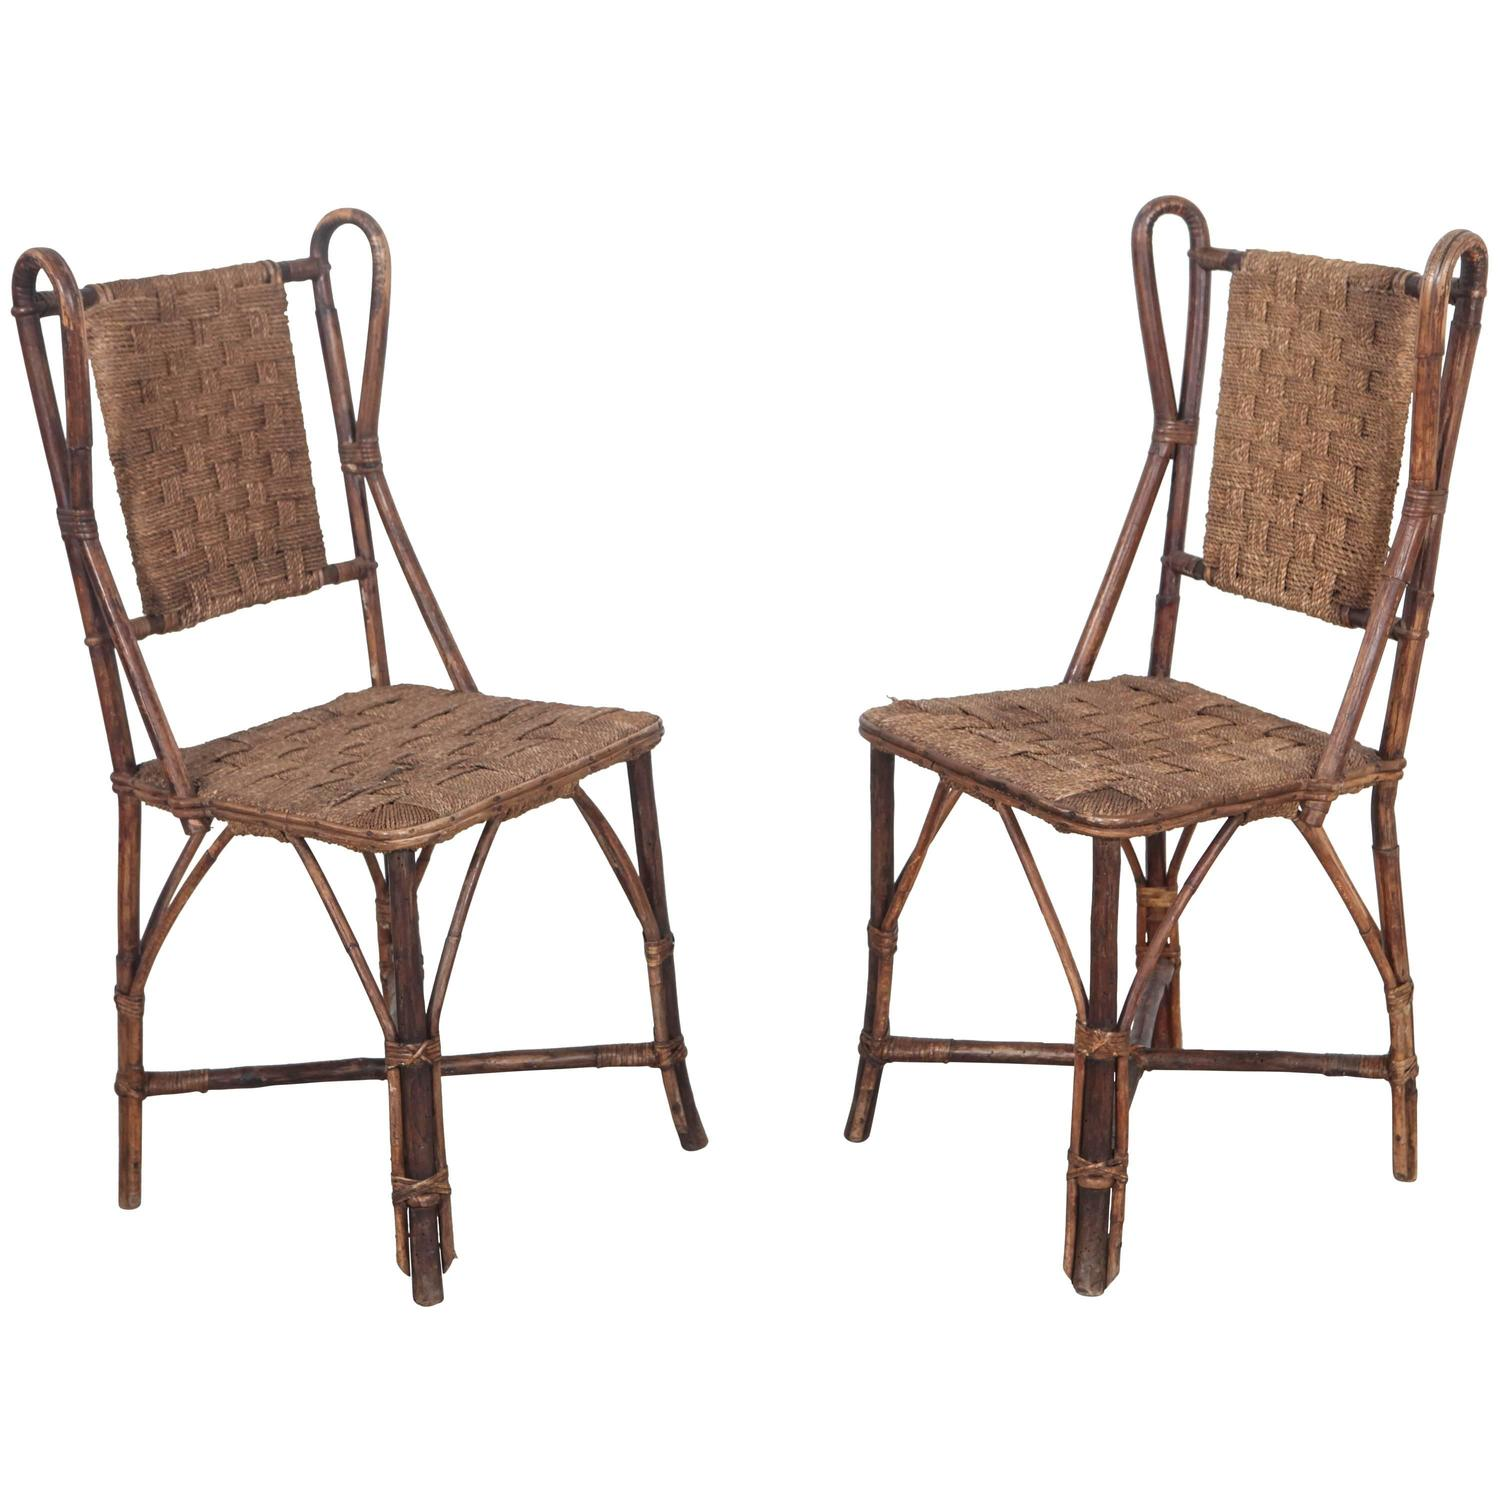 Wicker Side Chair Vintage Italian Wicker And Rush Side Chair For Sale At 1stdibs